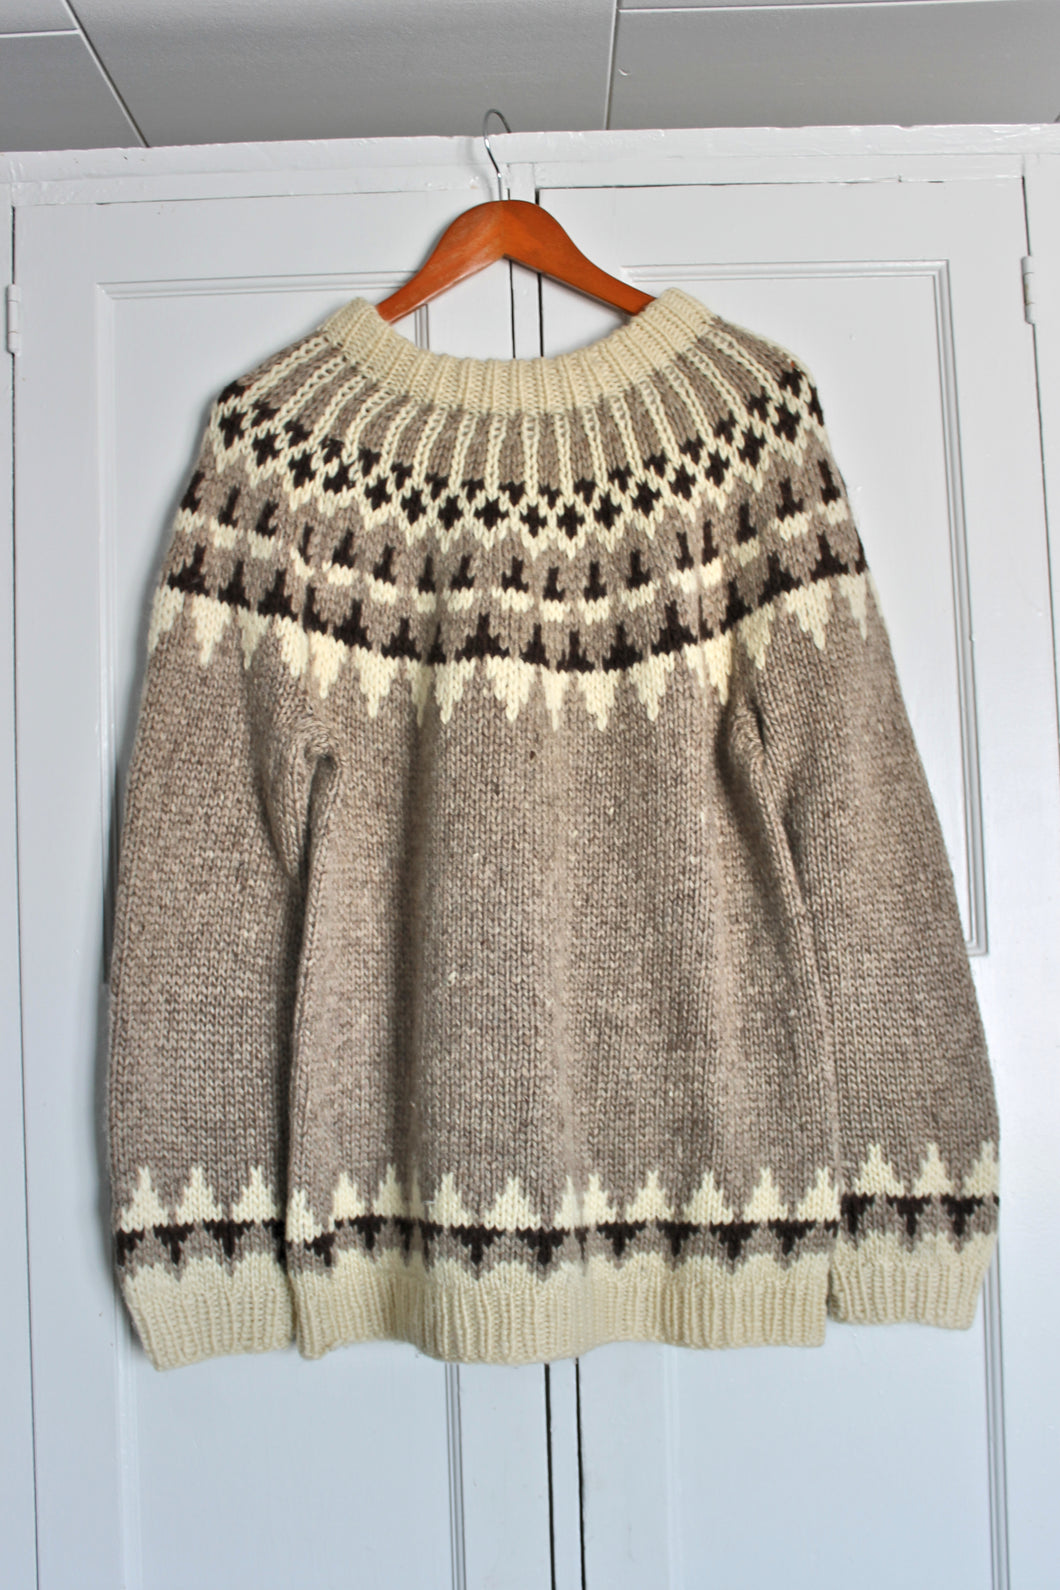 Vintage 1970's Cowichan Sweater